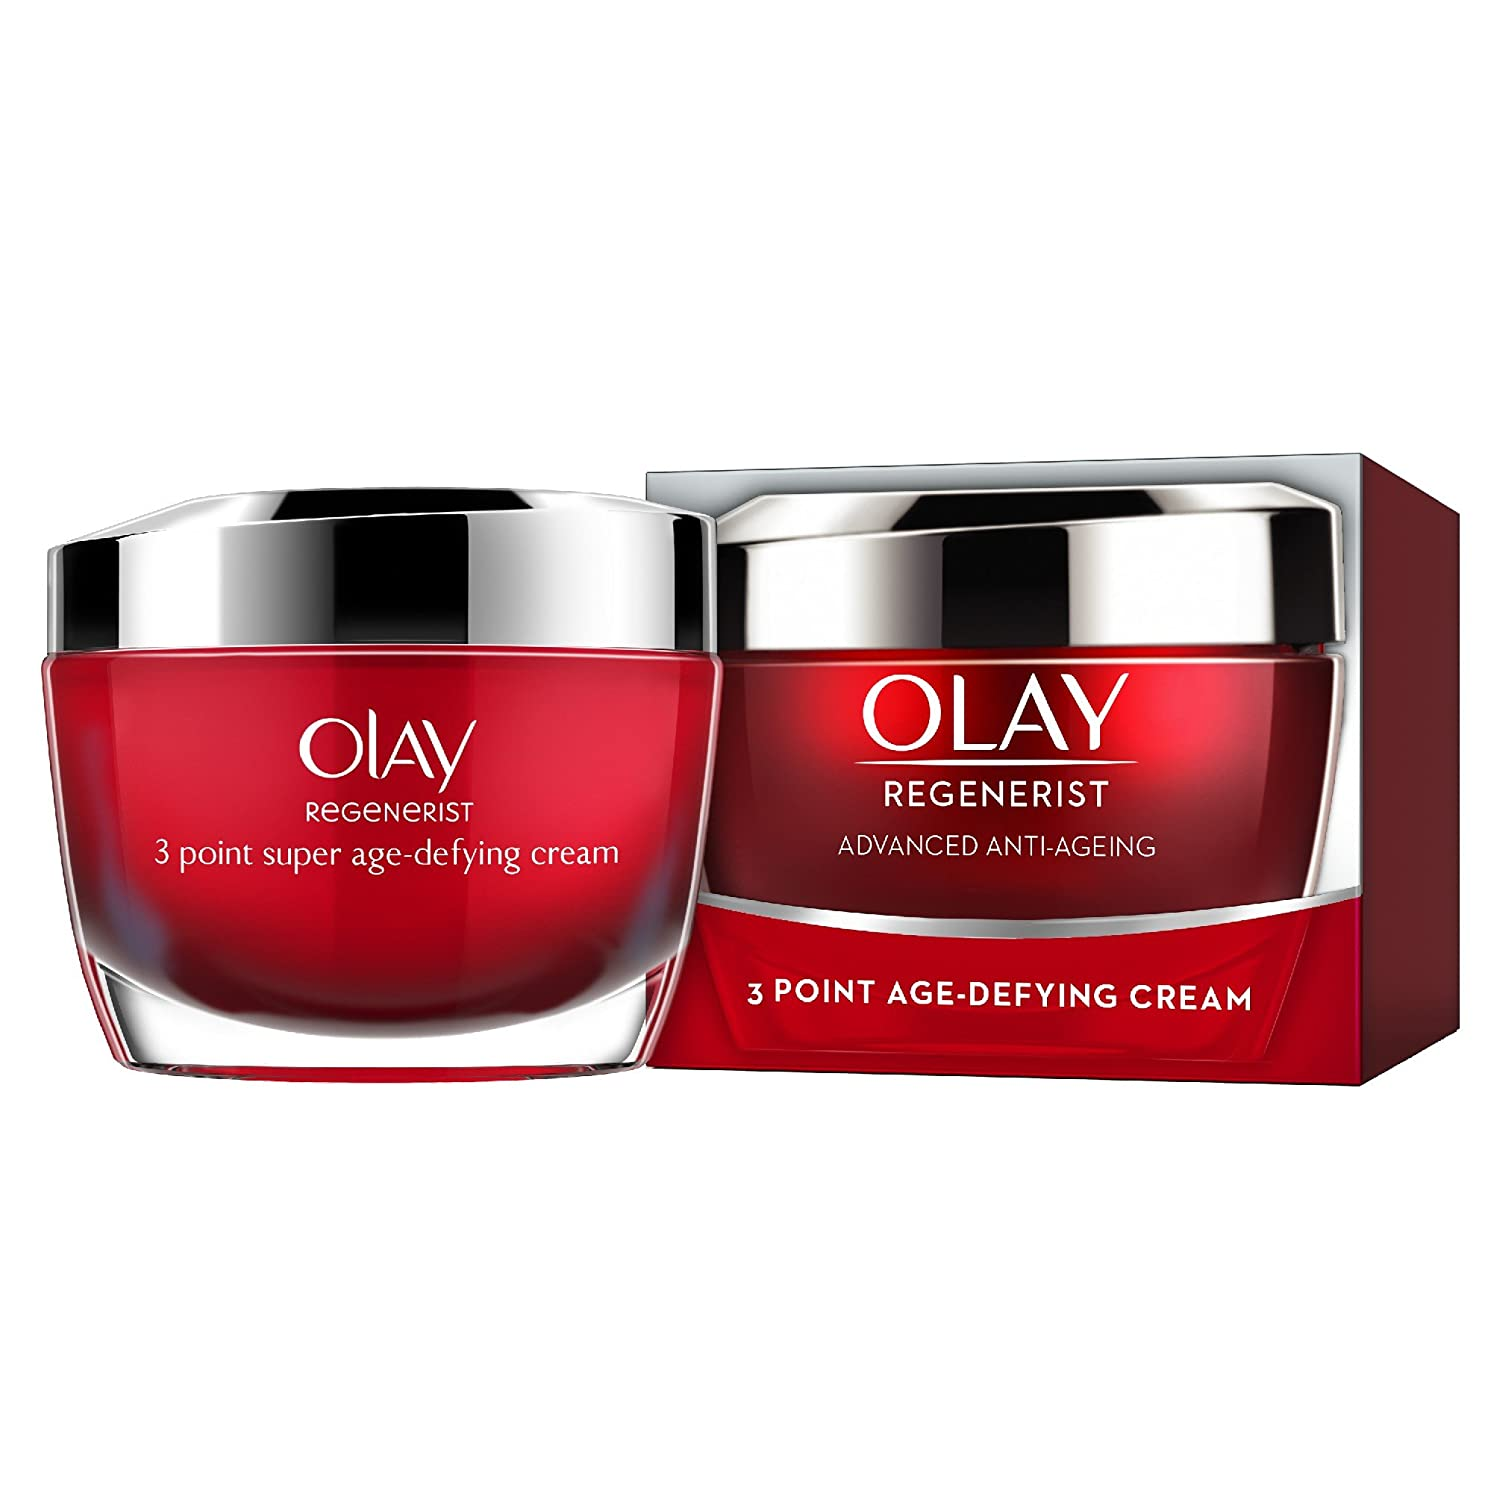 Olay Regenerist 3 Point Firming Anti-Ageing Night Cream Moisturiser, Firms Skin and Reduces the Look of Wrinkles, 50 ml Procter & Gamble 81513920